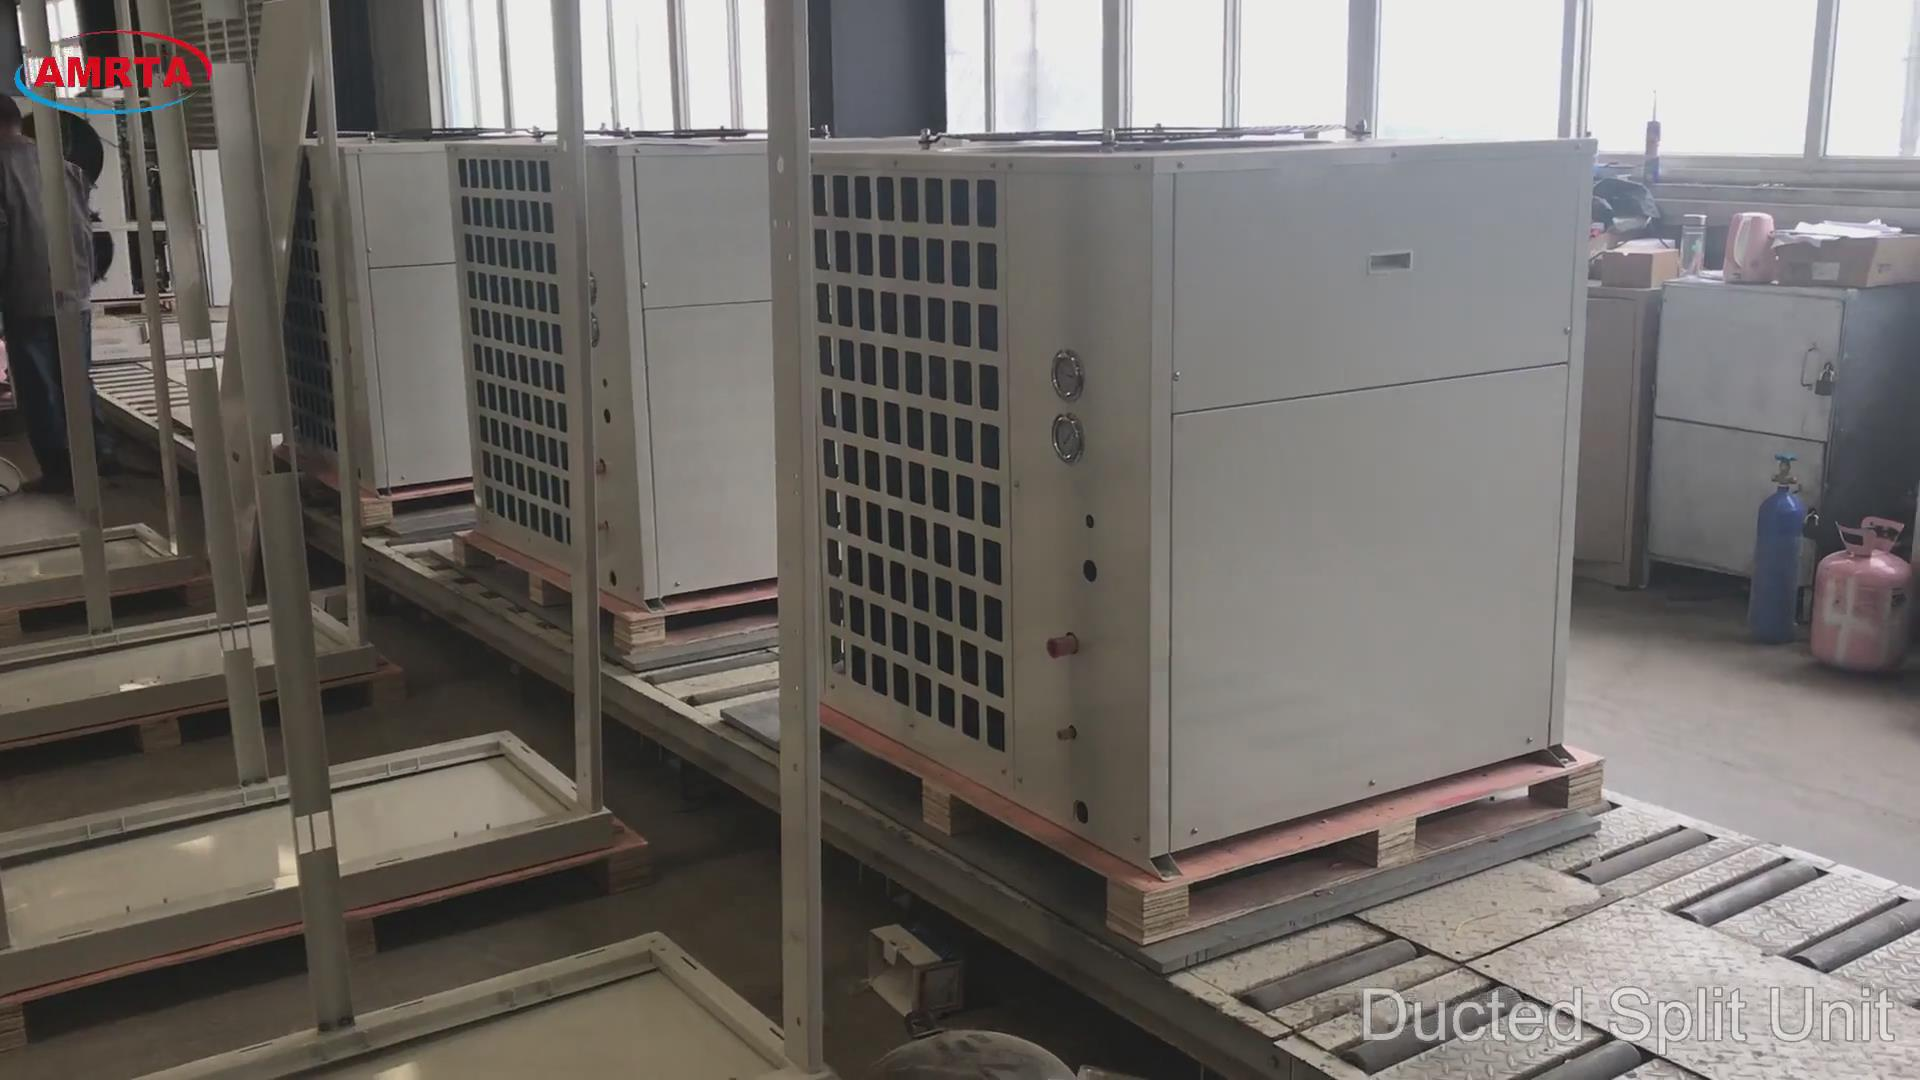 36kW Ducted Split Air Conditioning